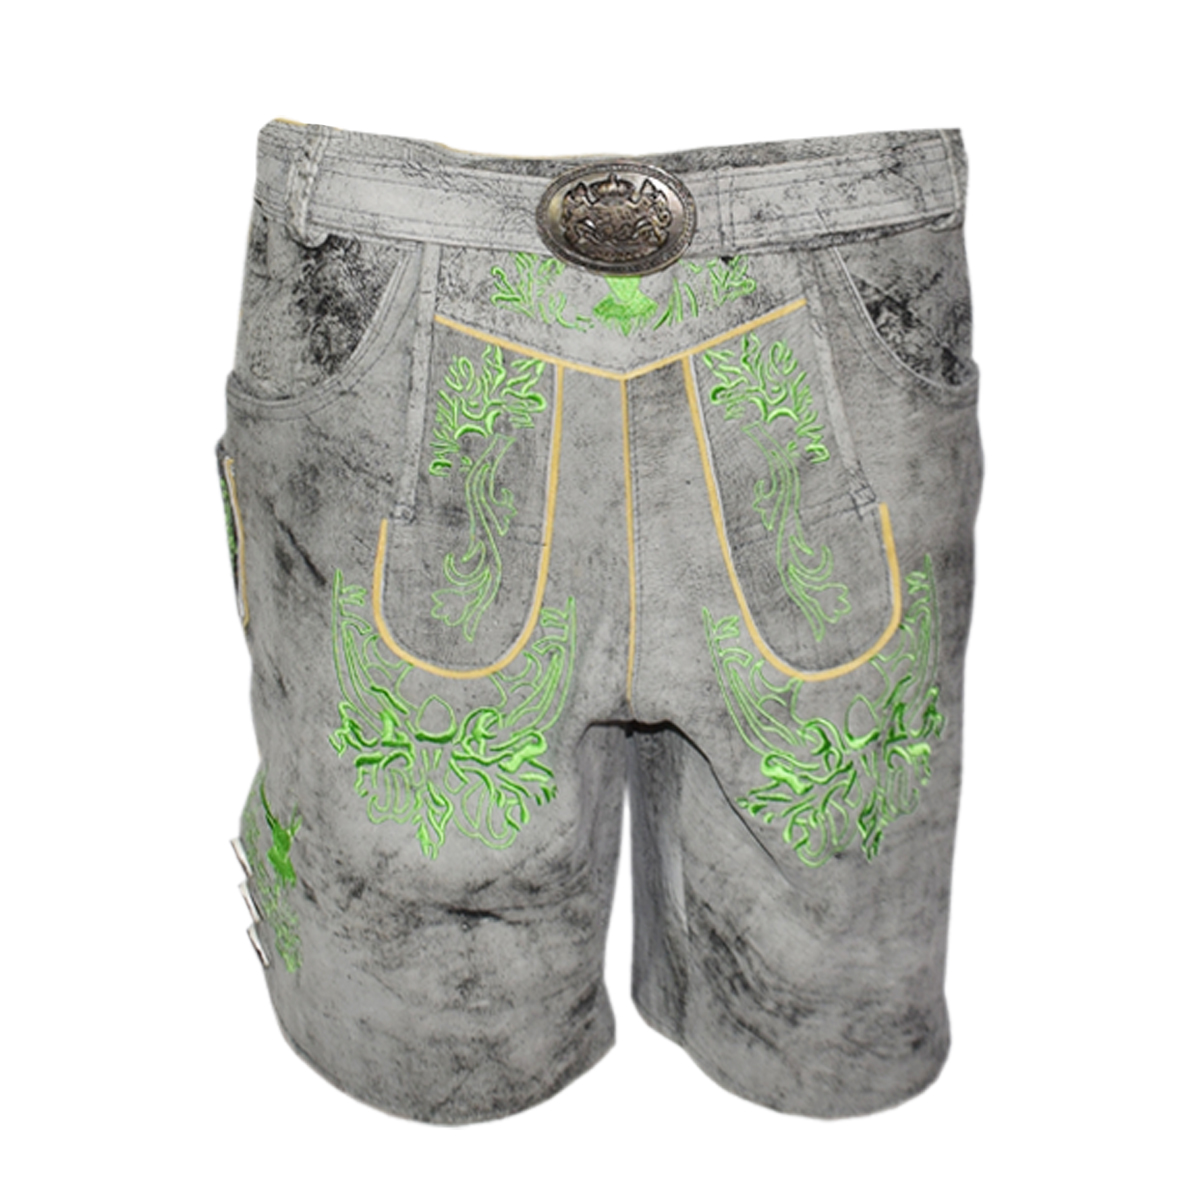 GREY MEN SHORT LEDERHOSEN WITH GREEN ART WORK